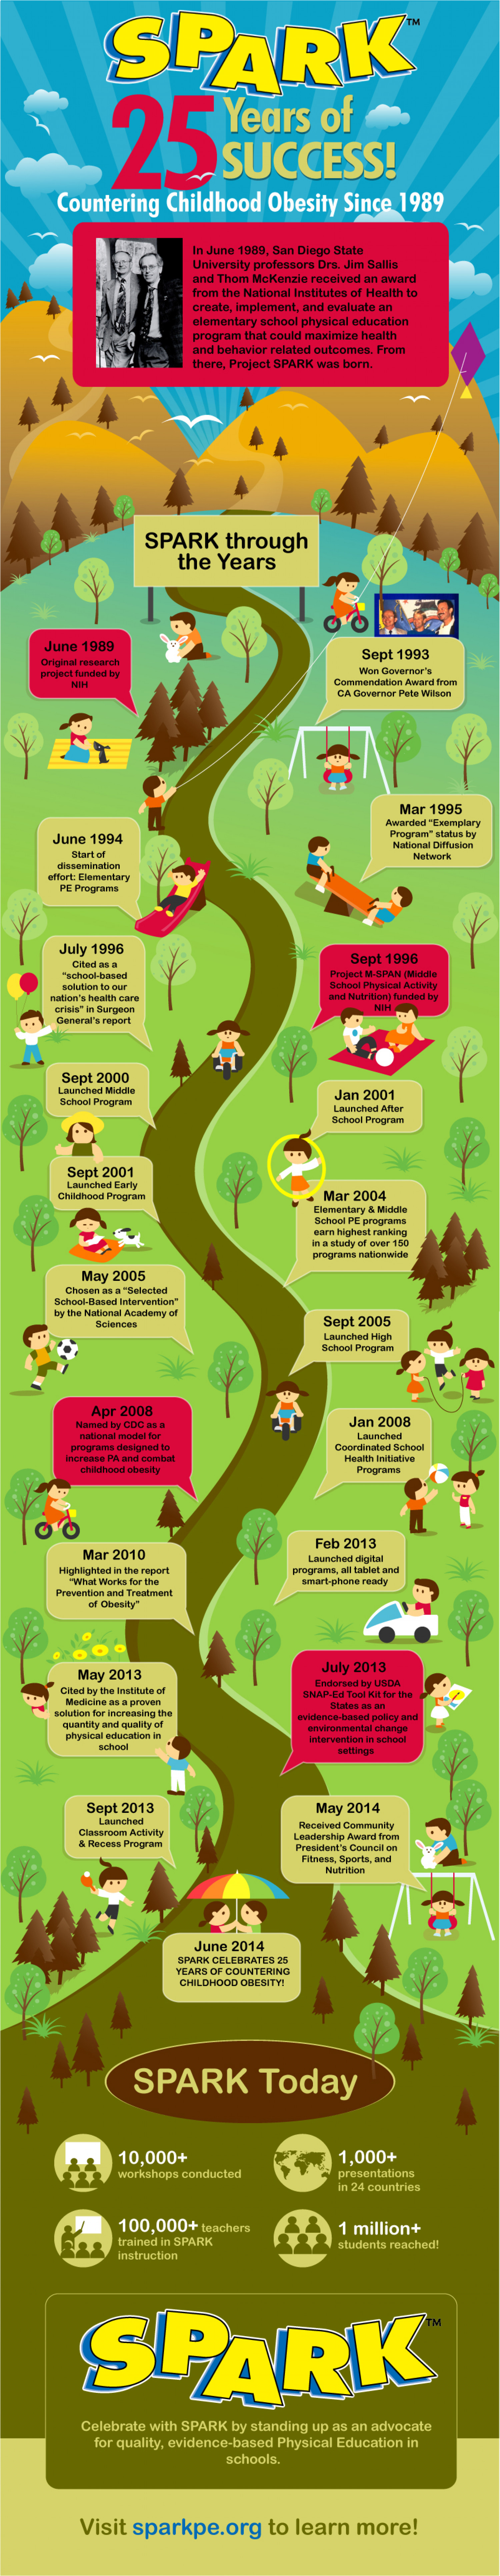 SPARK 25 Years of Success! Countering Childhood Obesity Since 1989 Infographic